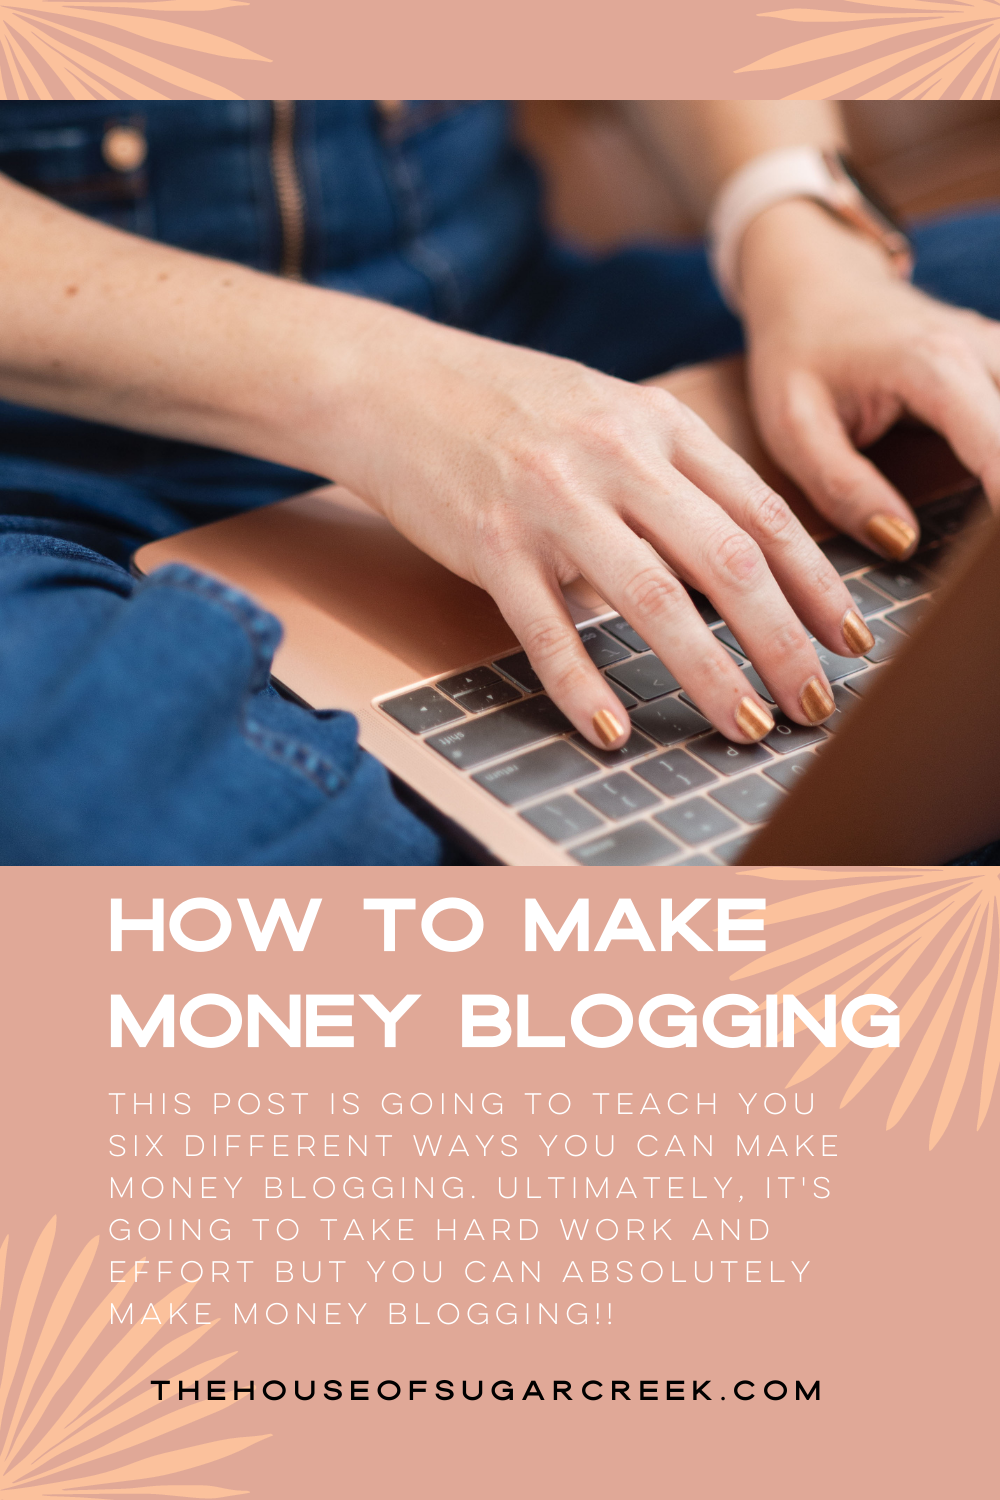 How to Make Money Blogging - The House of Sugar Creek